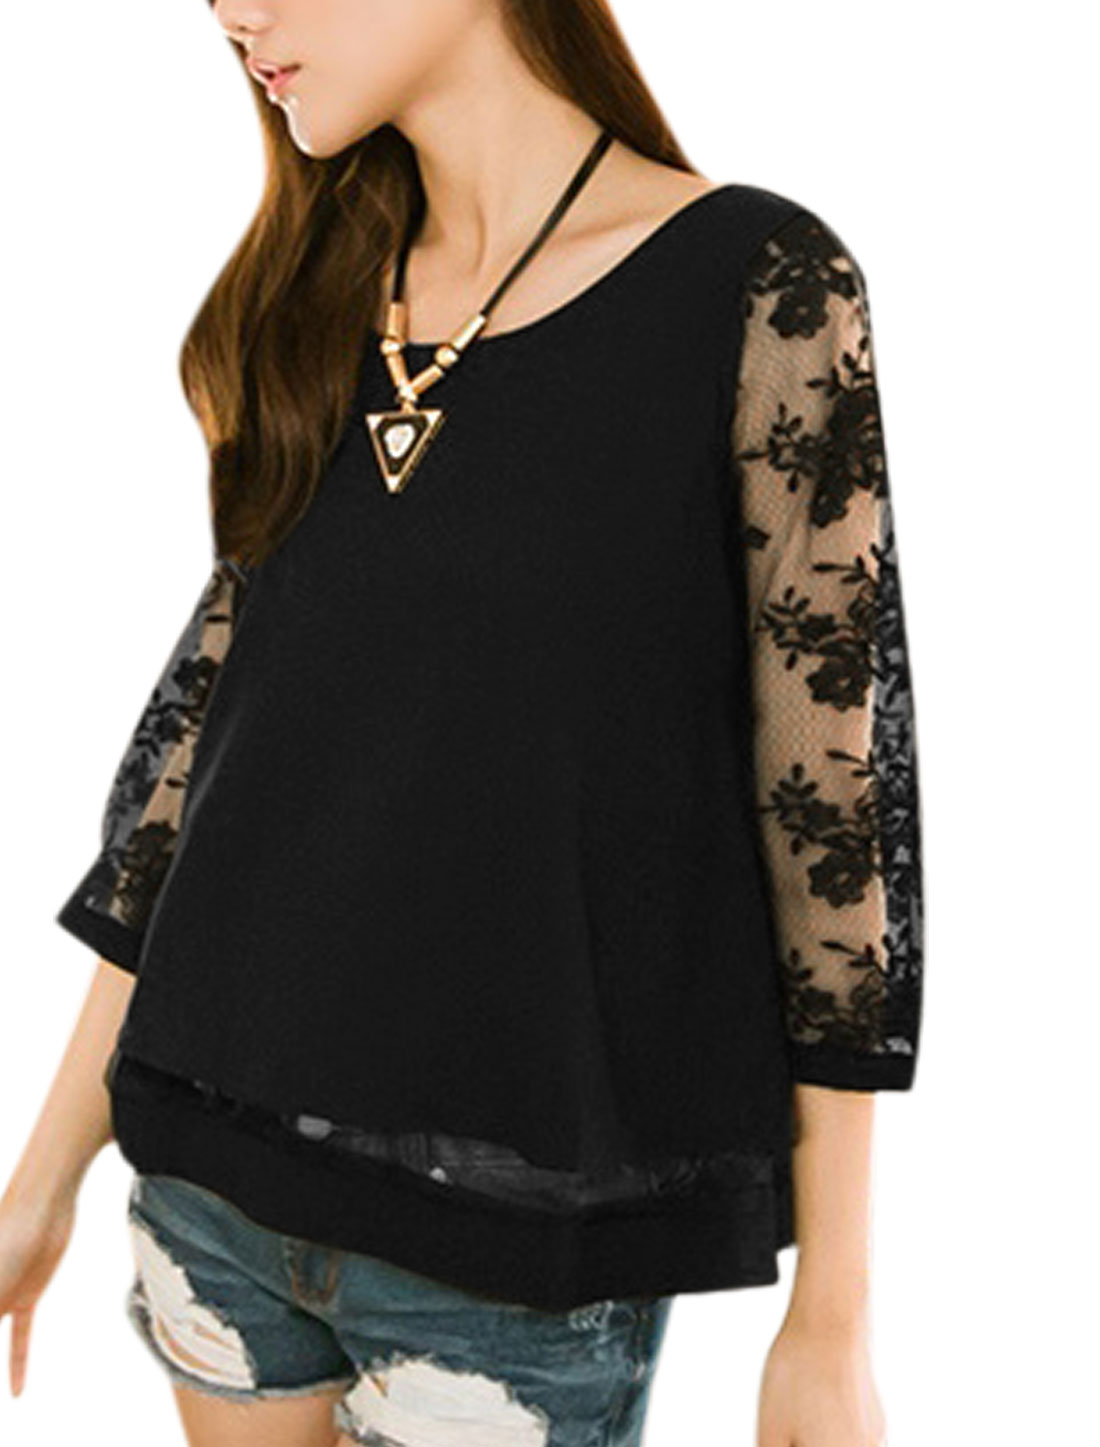 Women Round Neck 3/4 Sleeve Cross Back Casual Shirt Black XS